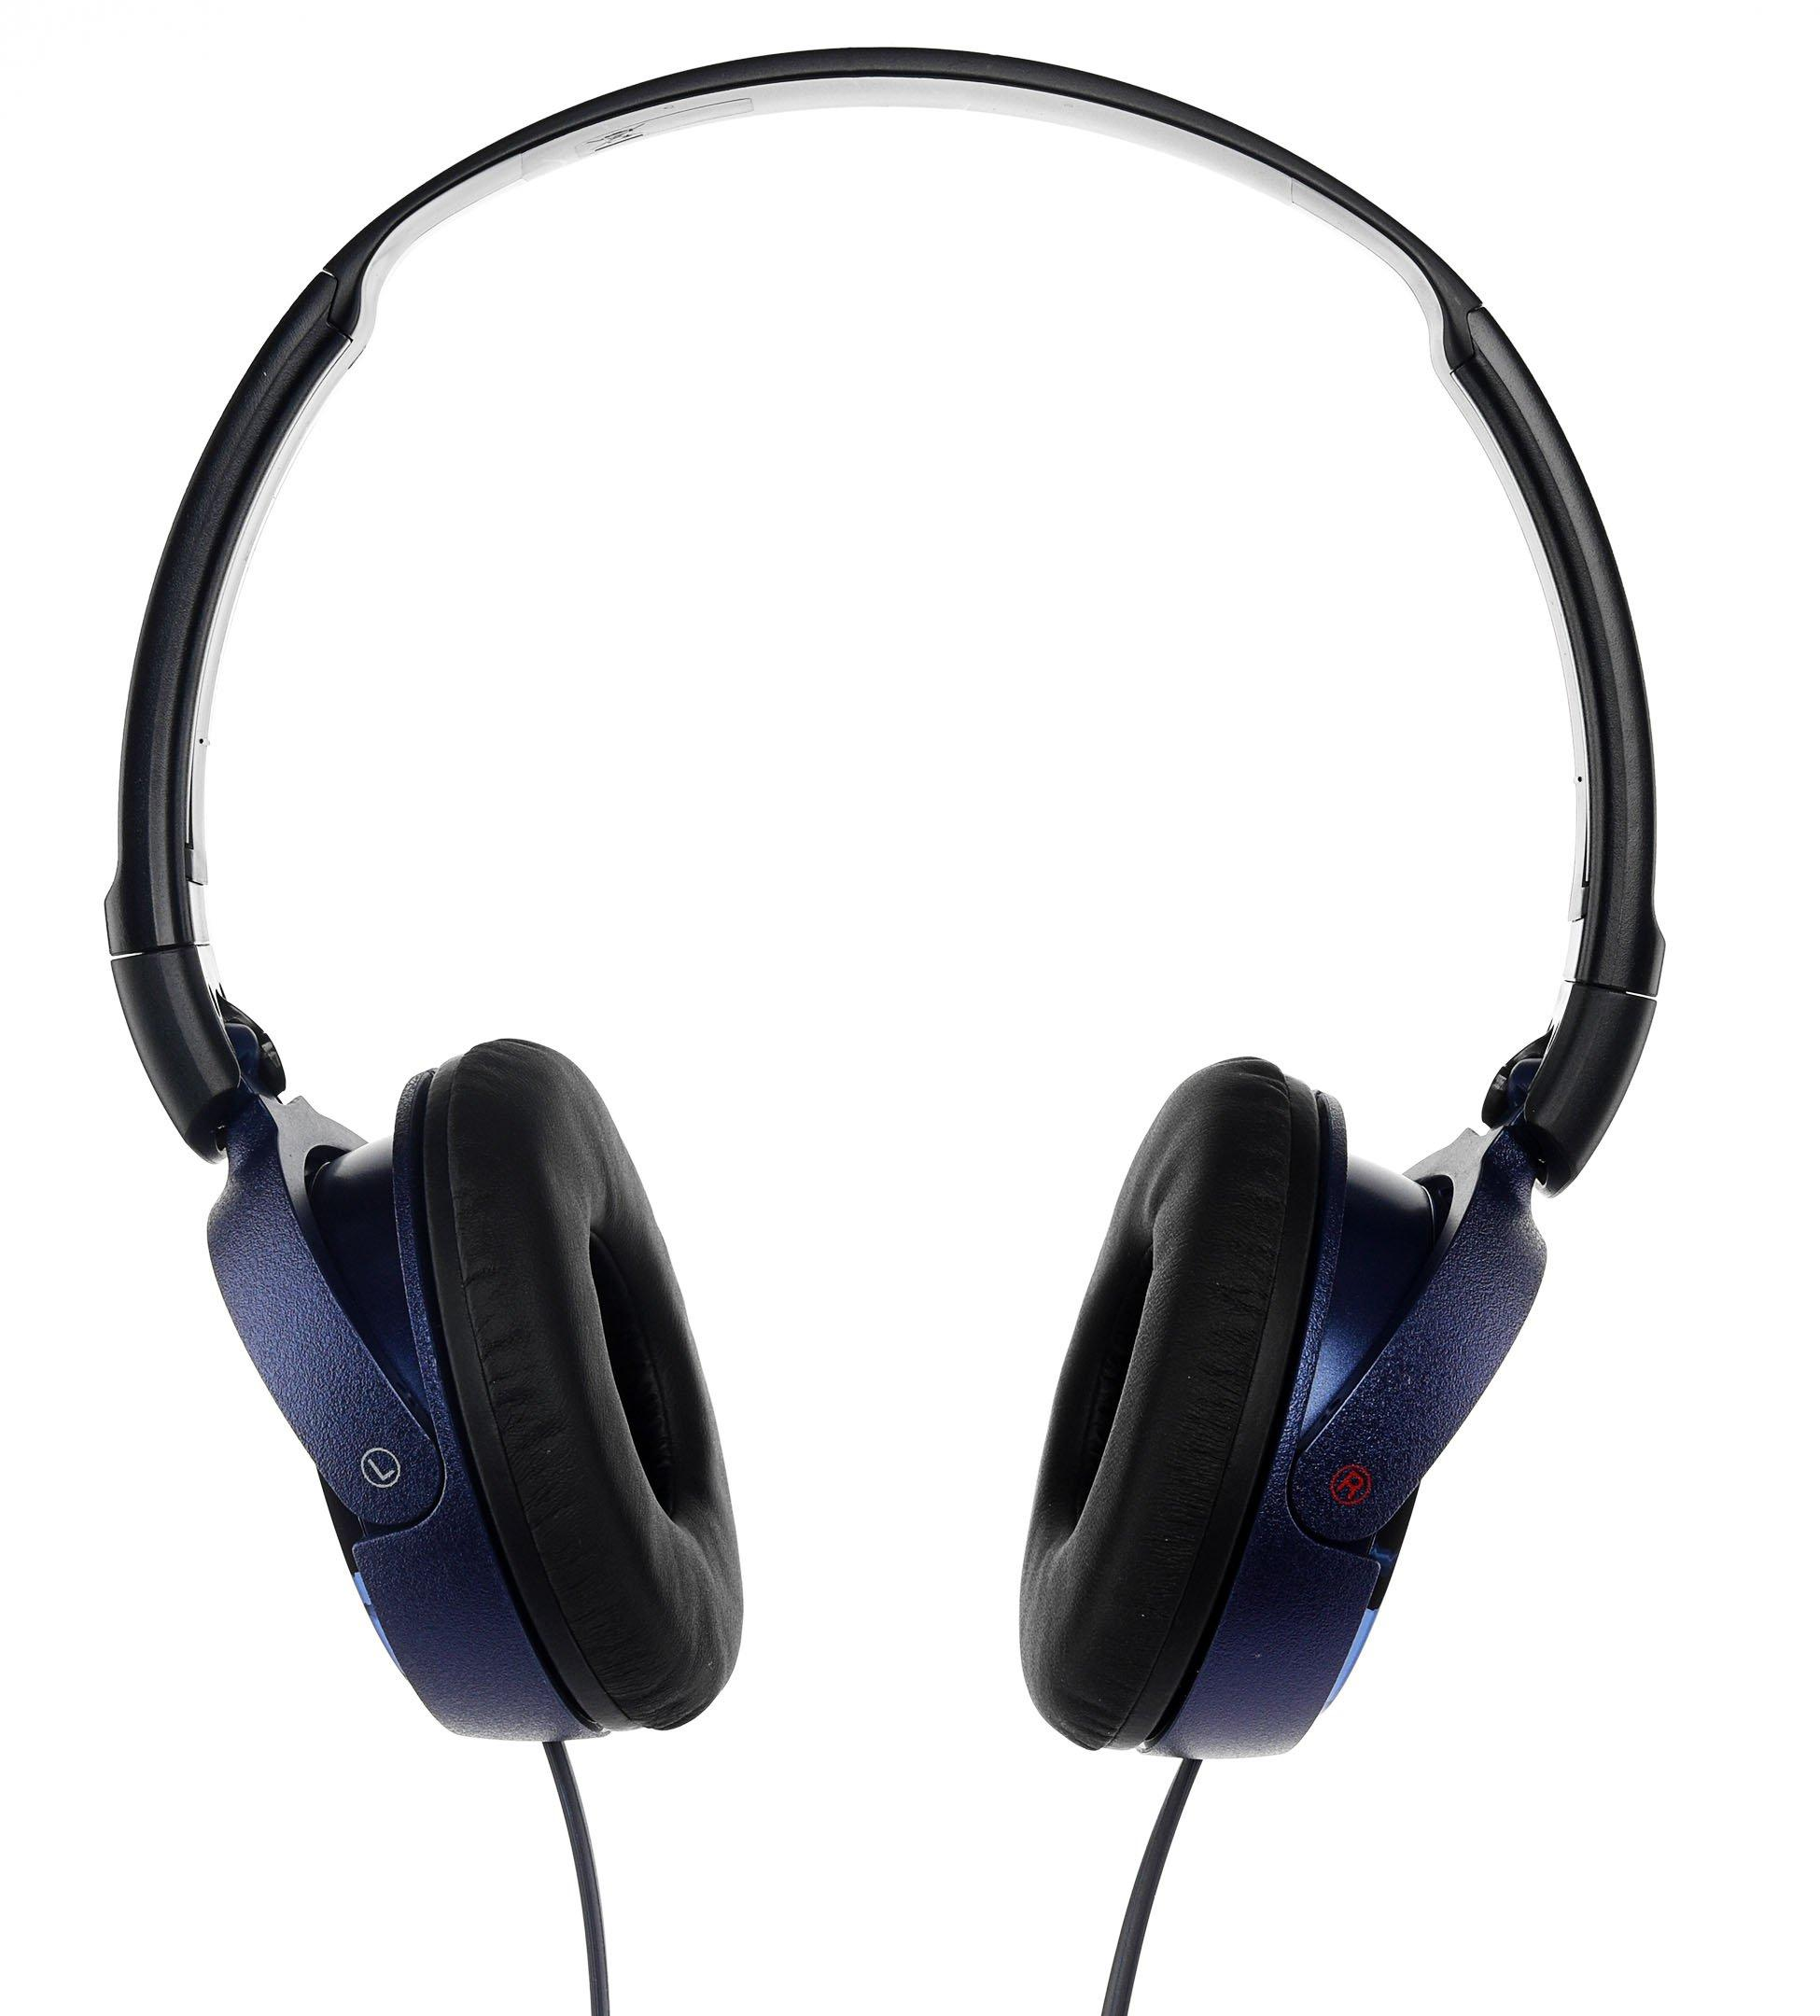 SONY ZX310 Headphone, Lightweight and folding design, 30mm drivers